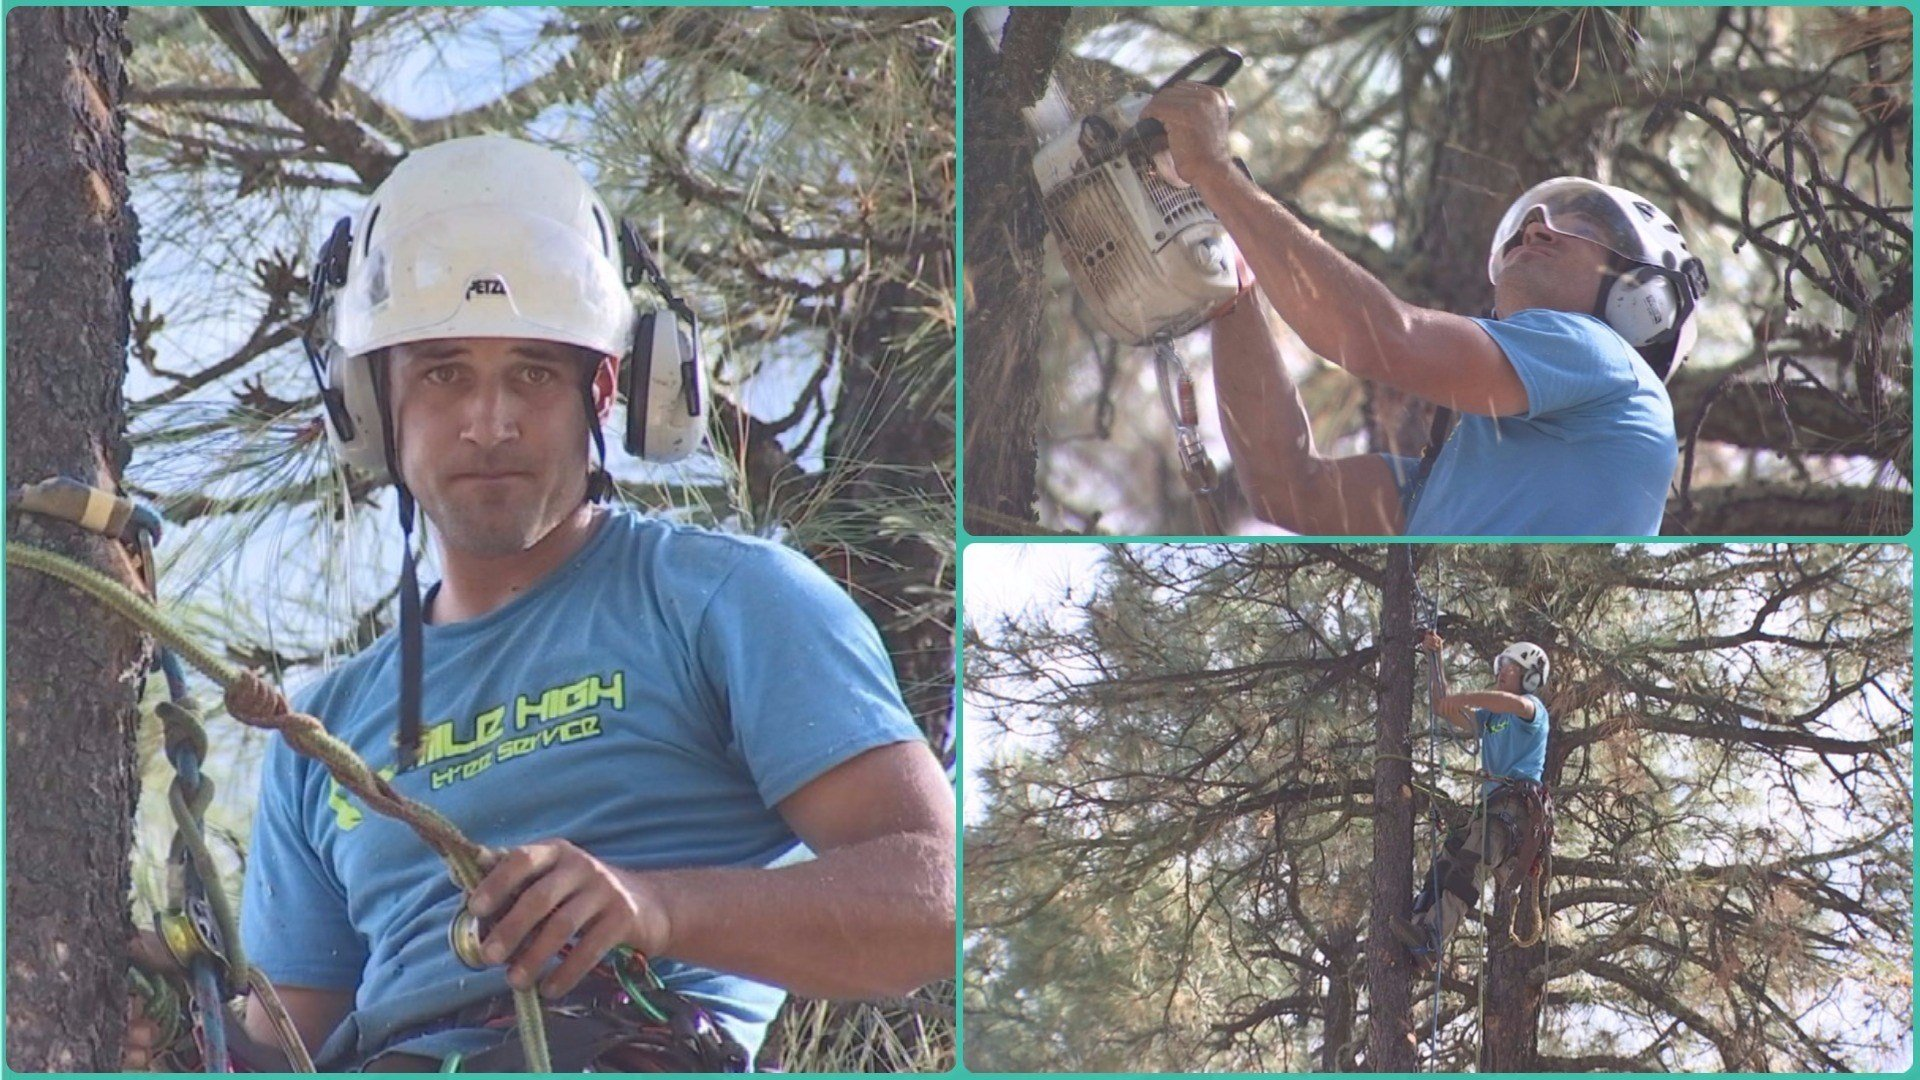 Today Bunch is a tree climber. 'It's like the closest thing to hotshotting I can get to without being gone ...,' he said. (Source: 3TV/CBS 5)